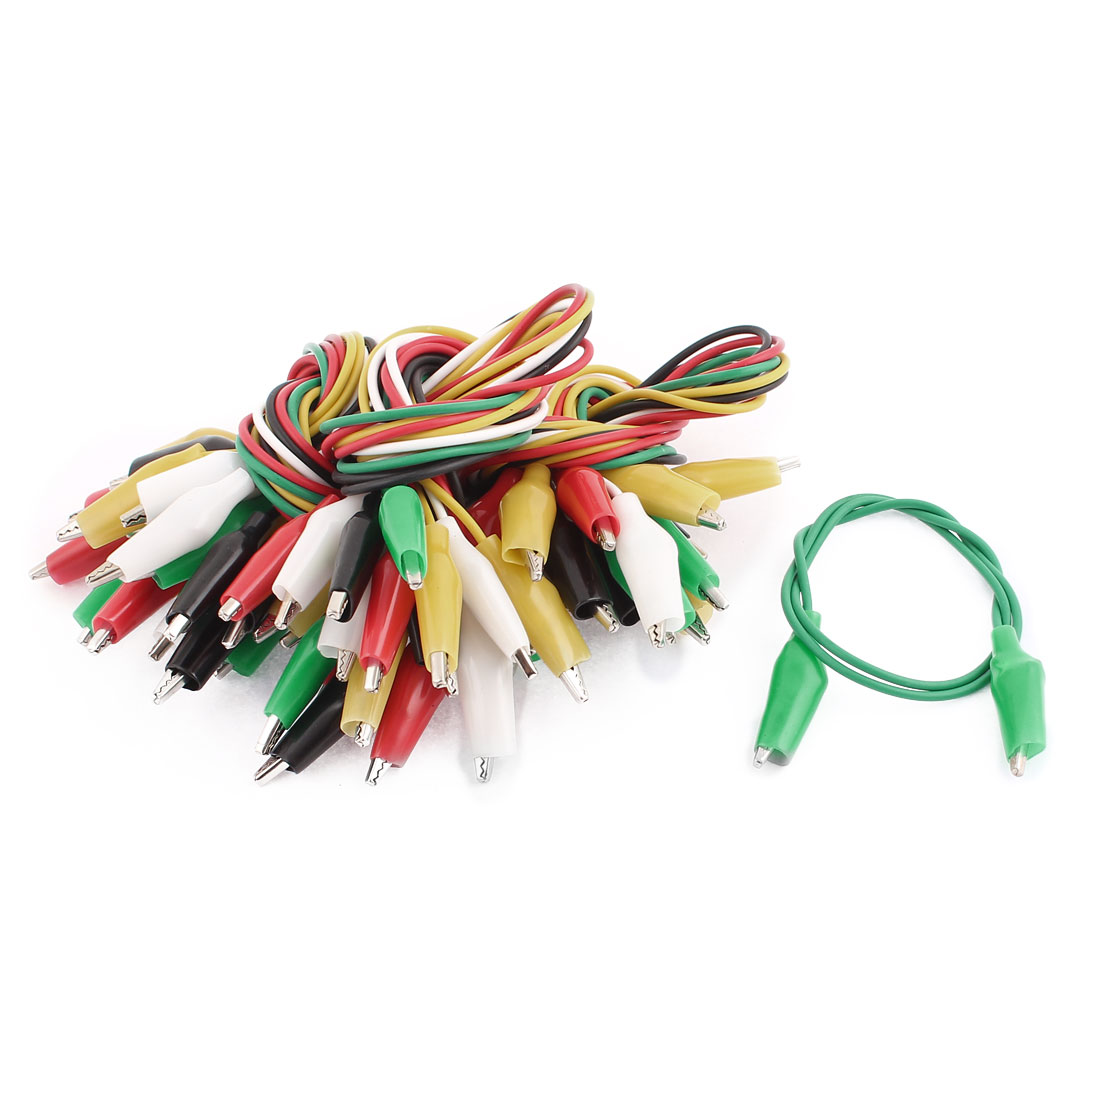 30pcs 50cm Length Colorful Double-ended Alligator Clips Test Jumper Wire